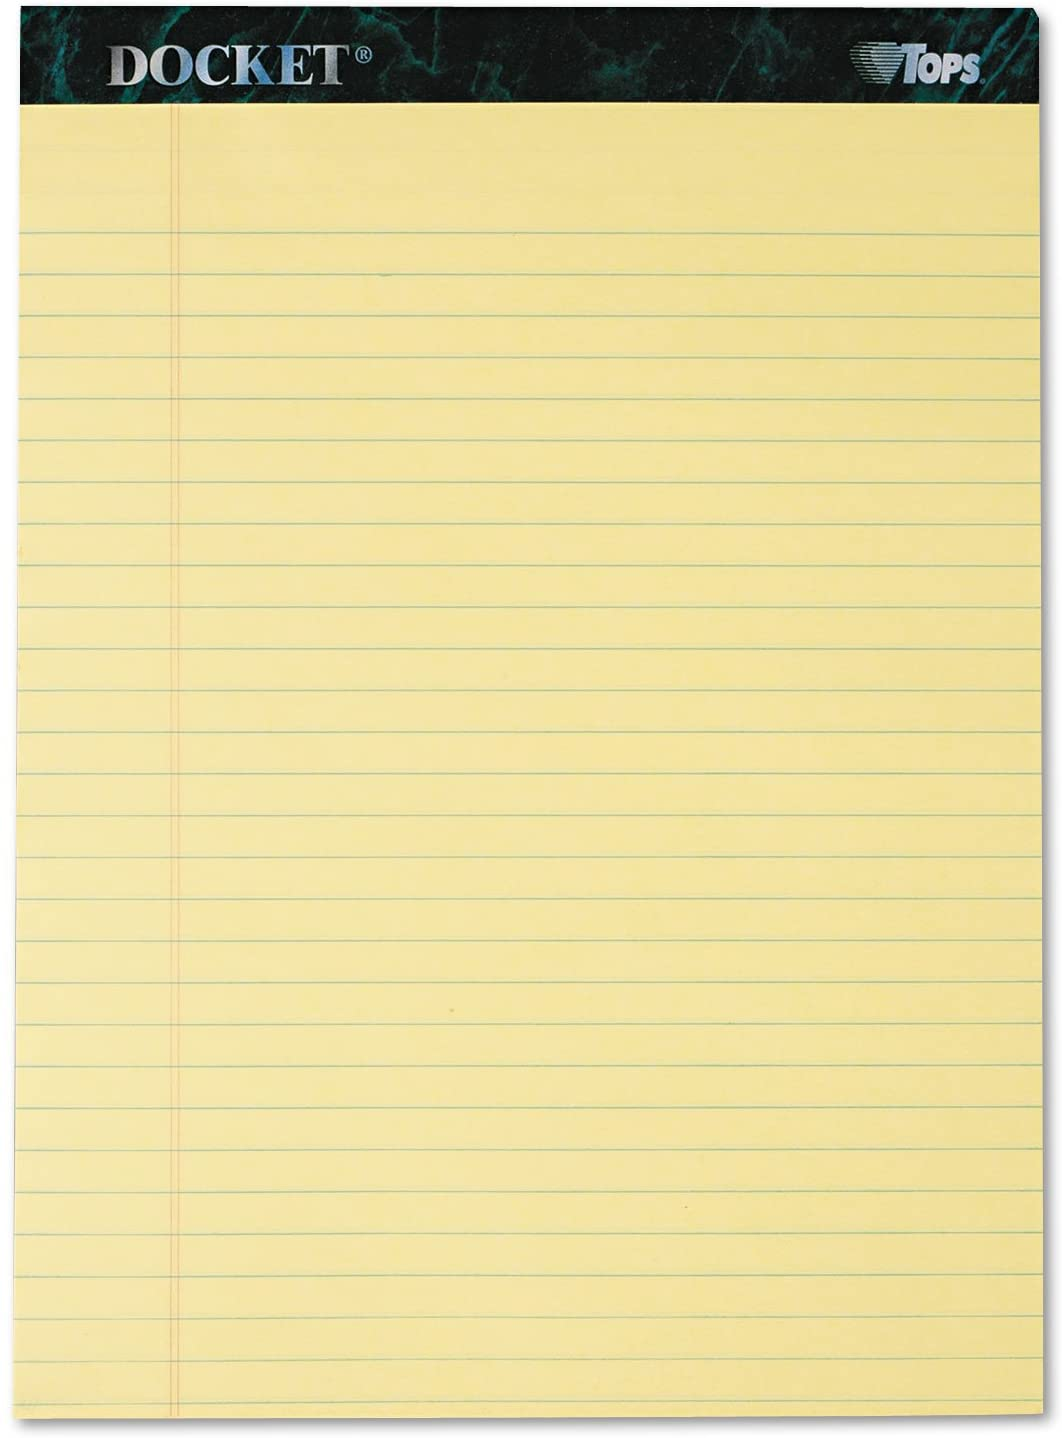 TOPS 63400 Notepads,Wide Ruled,50 Sheets,8-1/2-Inch x11-3/4-Inch,12/PK,Canary